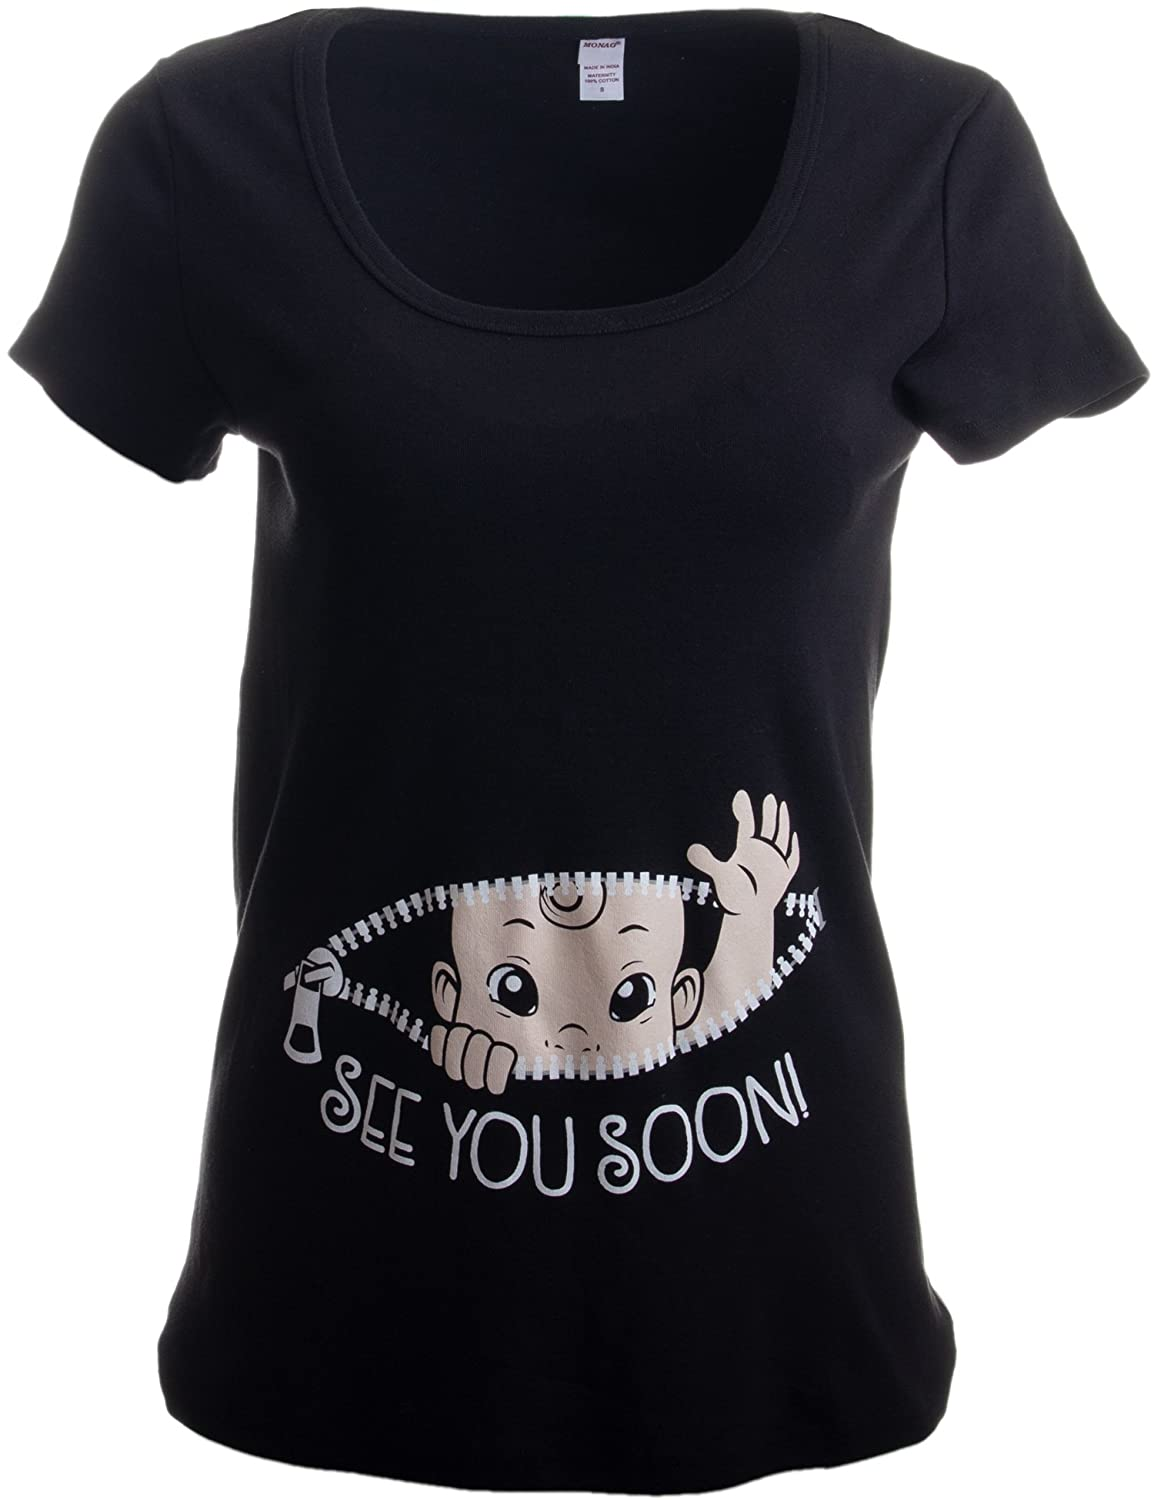 See You Soon! | Cute Funny Maternity Pregnancy Baby Scoop Neck Top T-Shirt for Pregnant Women